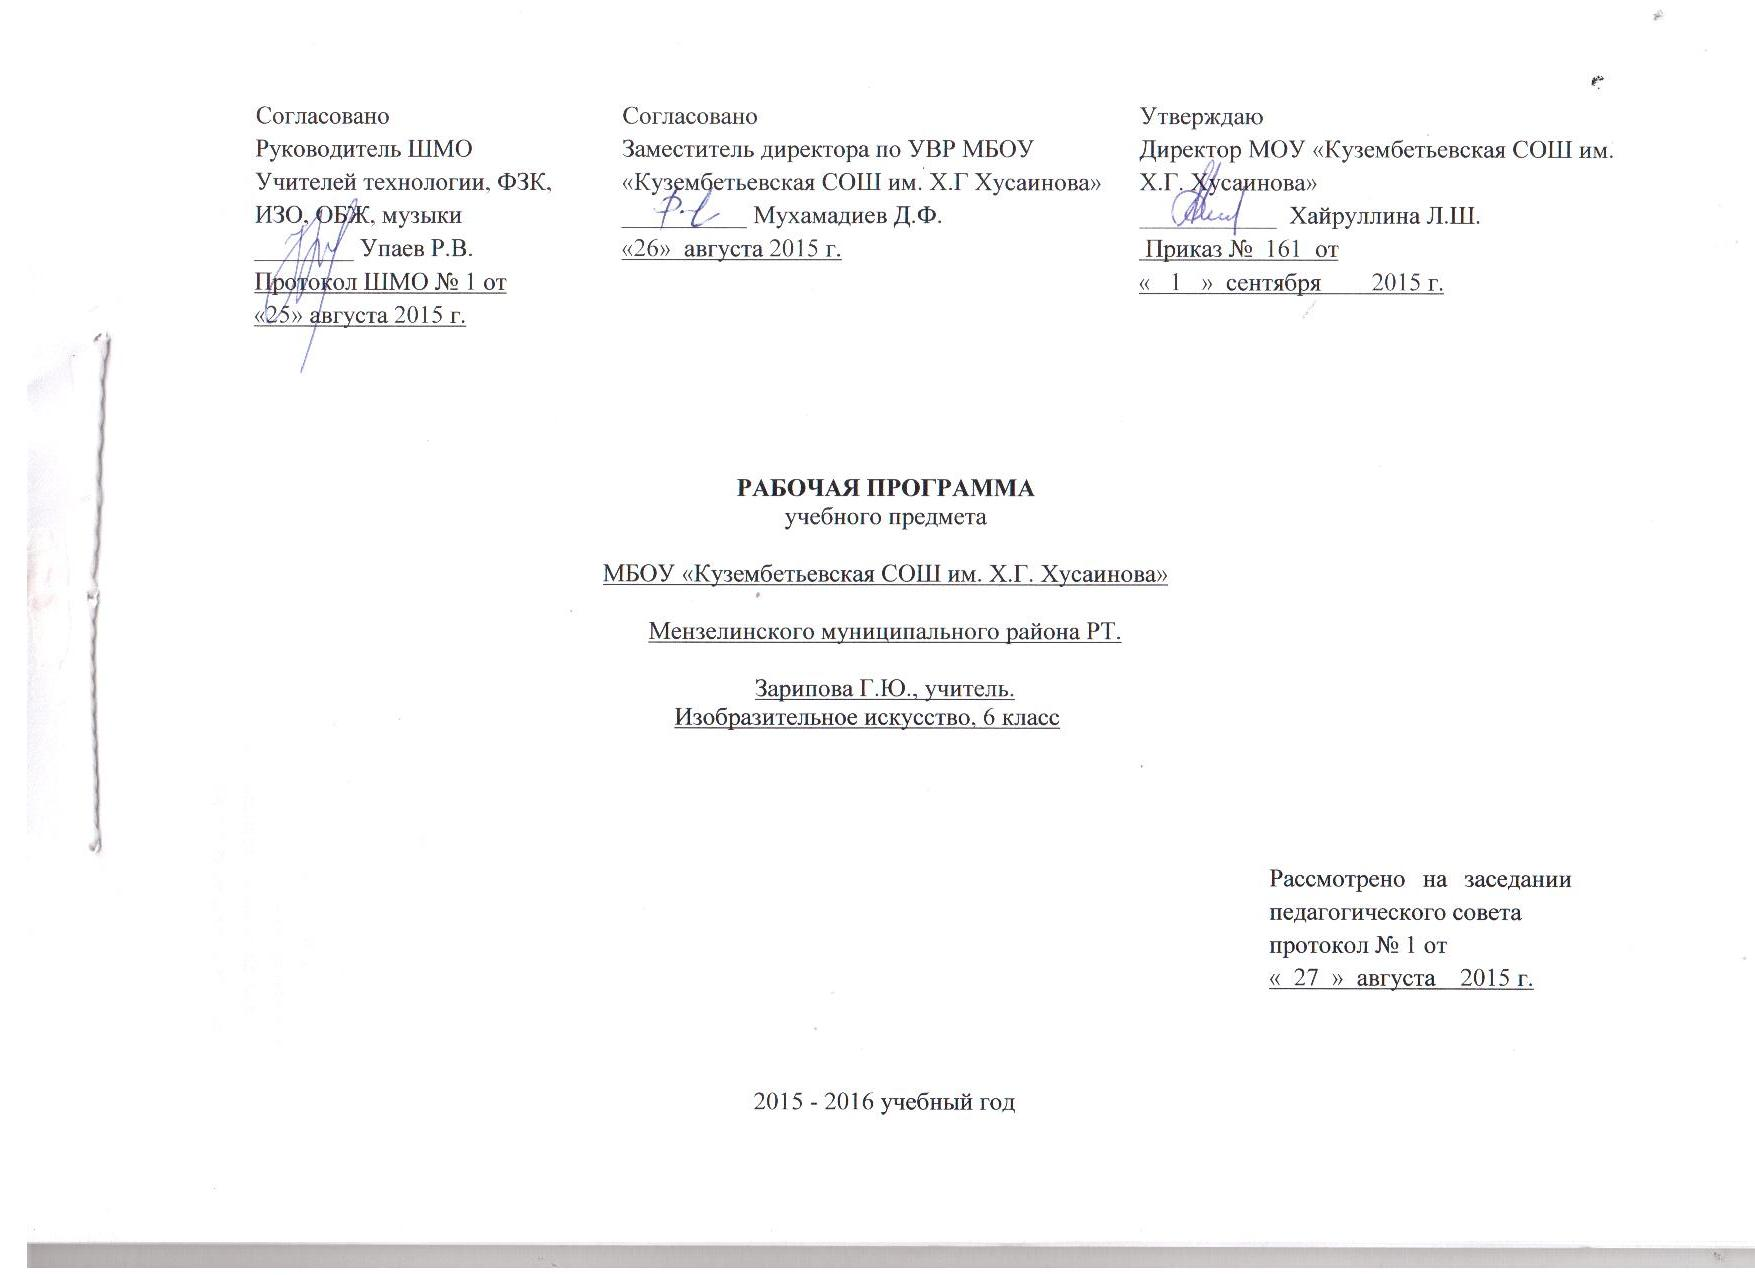 C:\Documents and Settings\школа\Local Settings\Temporary Internet Files\Content.Word\титул 004.jpg